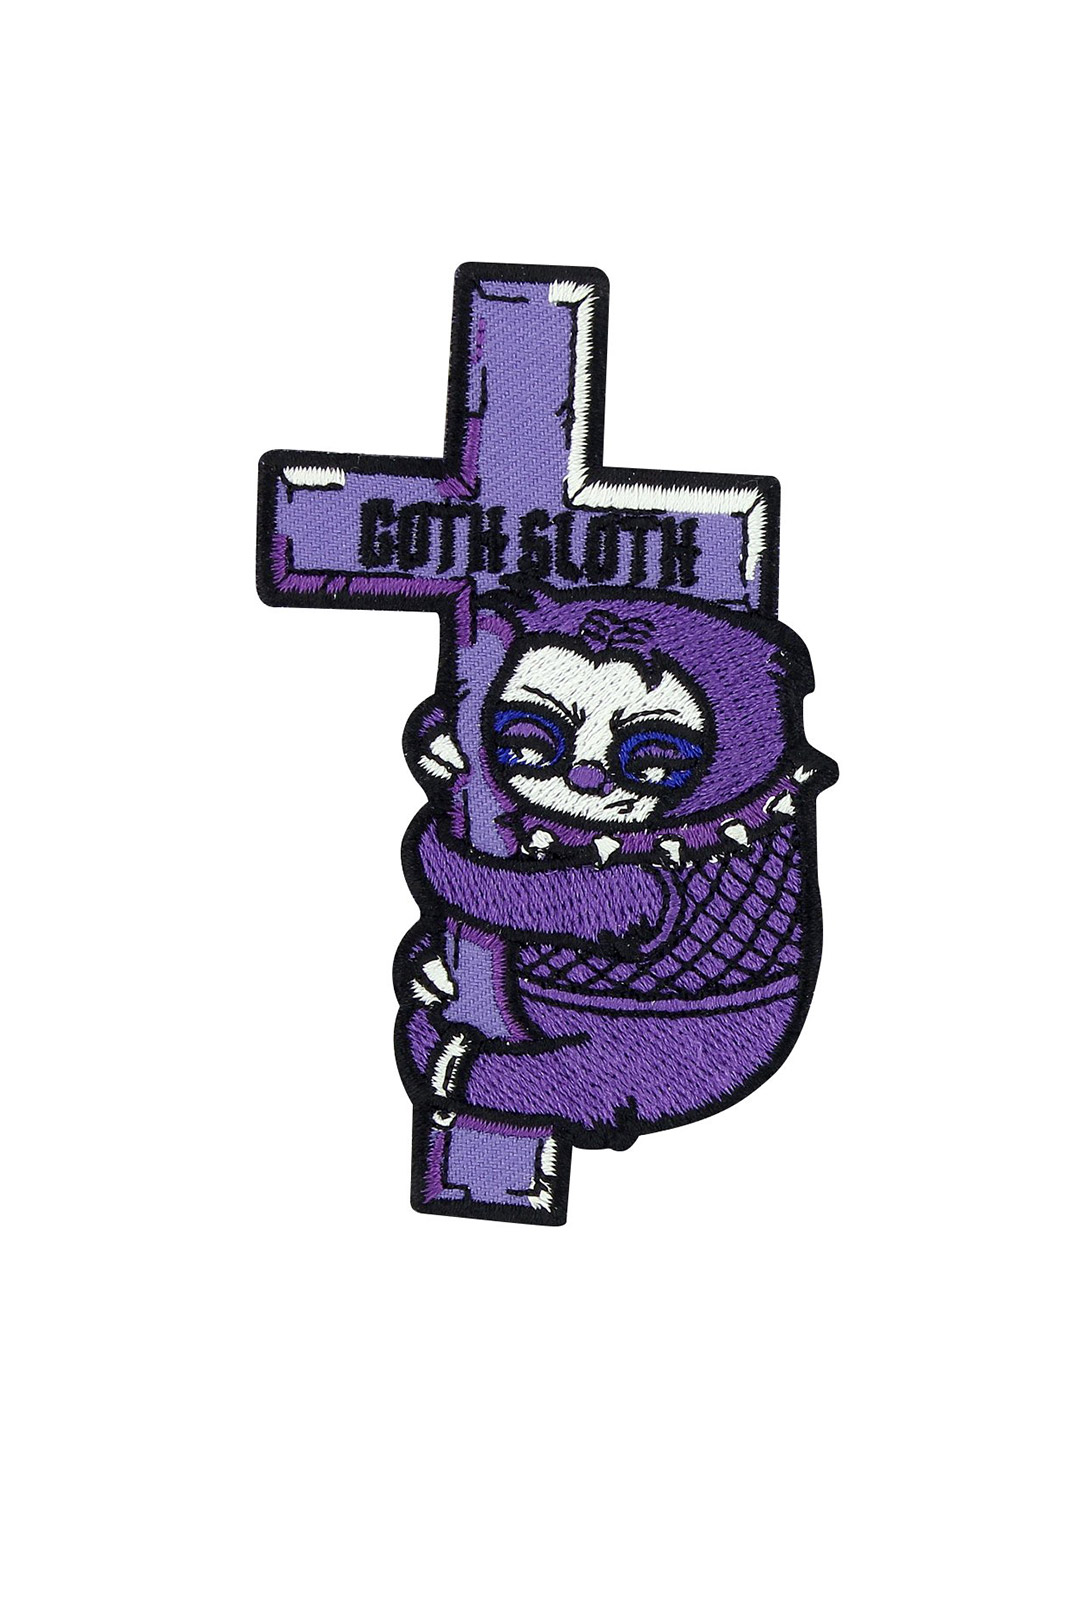 Goth Sloth Patch